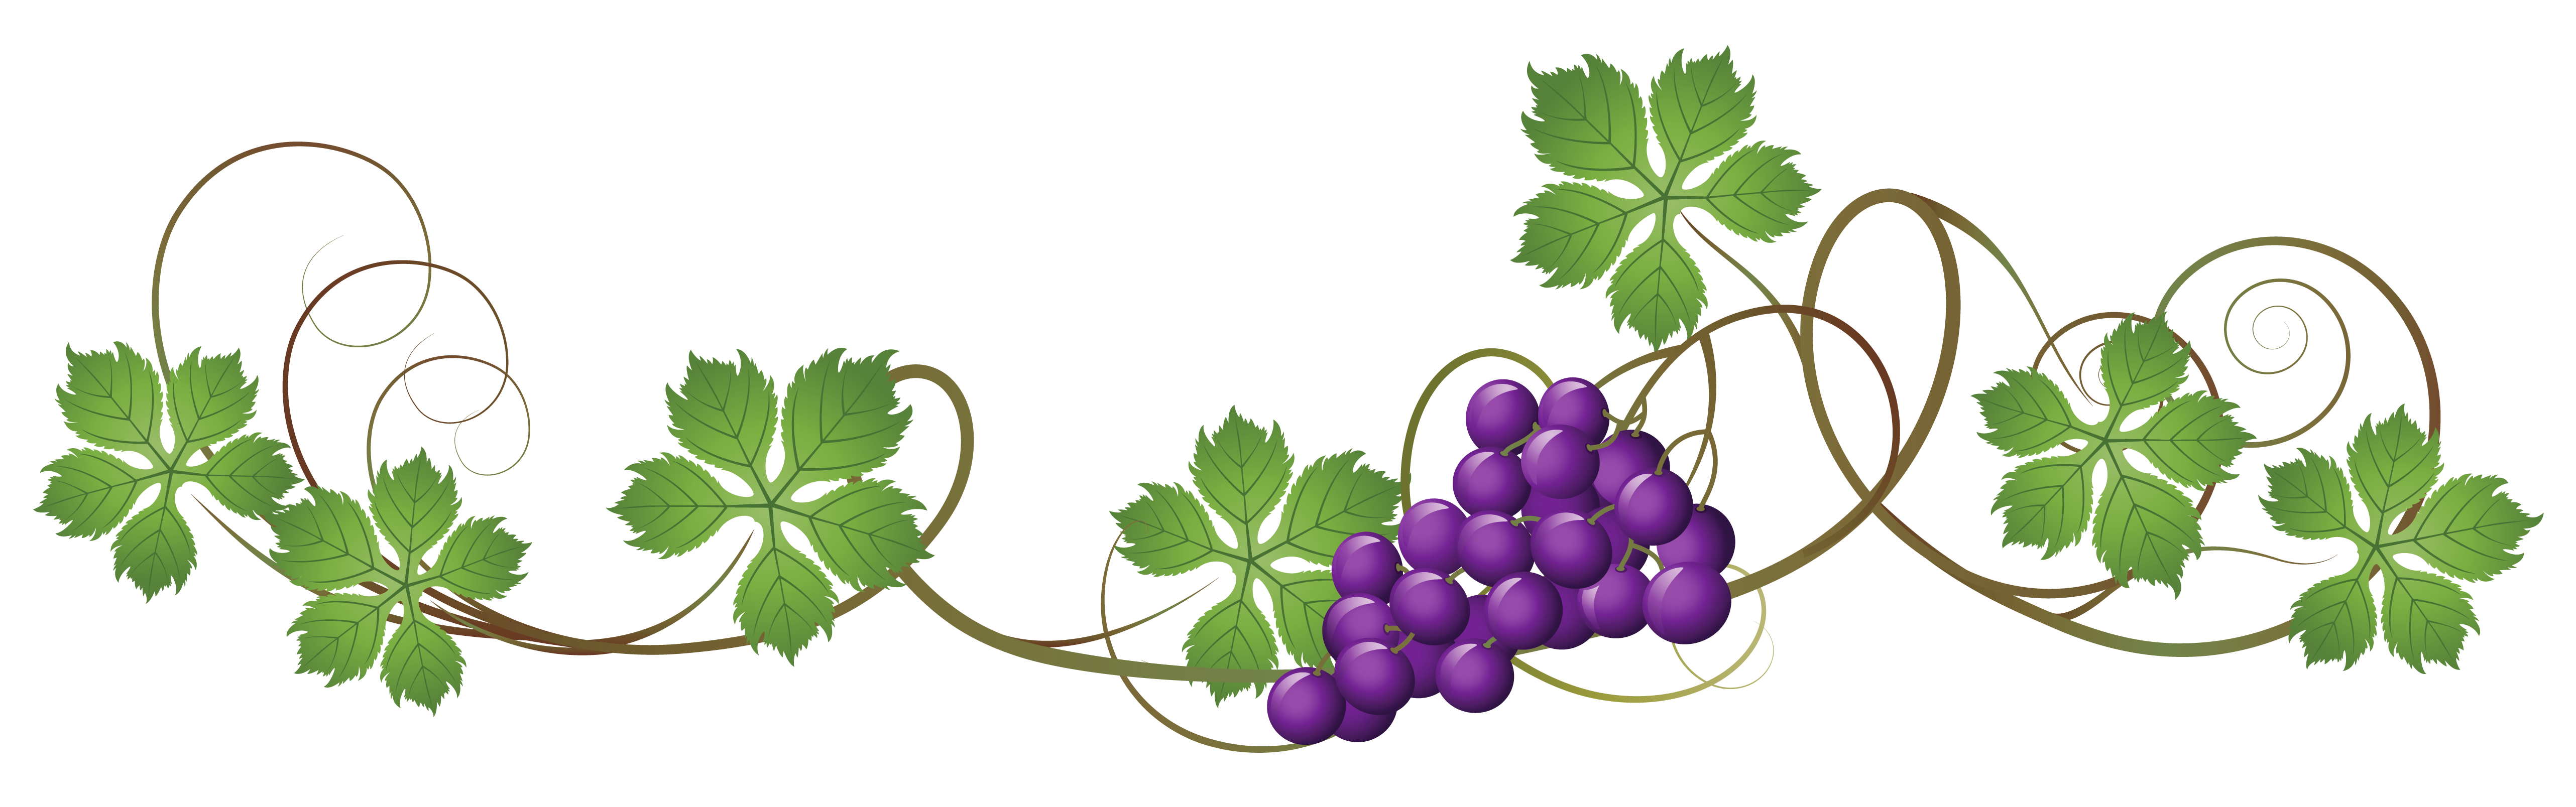 banner download Grapevine clipart.  collection of grape